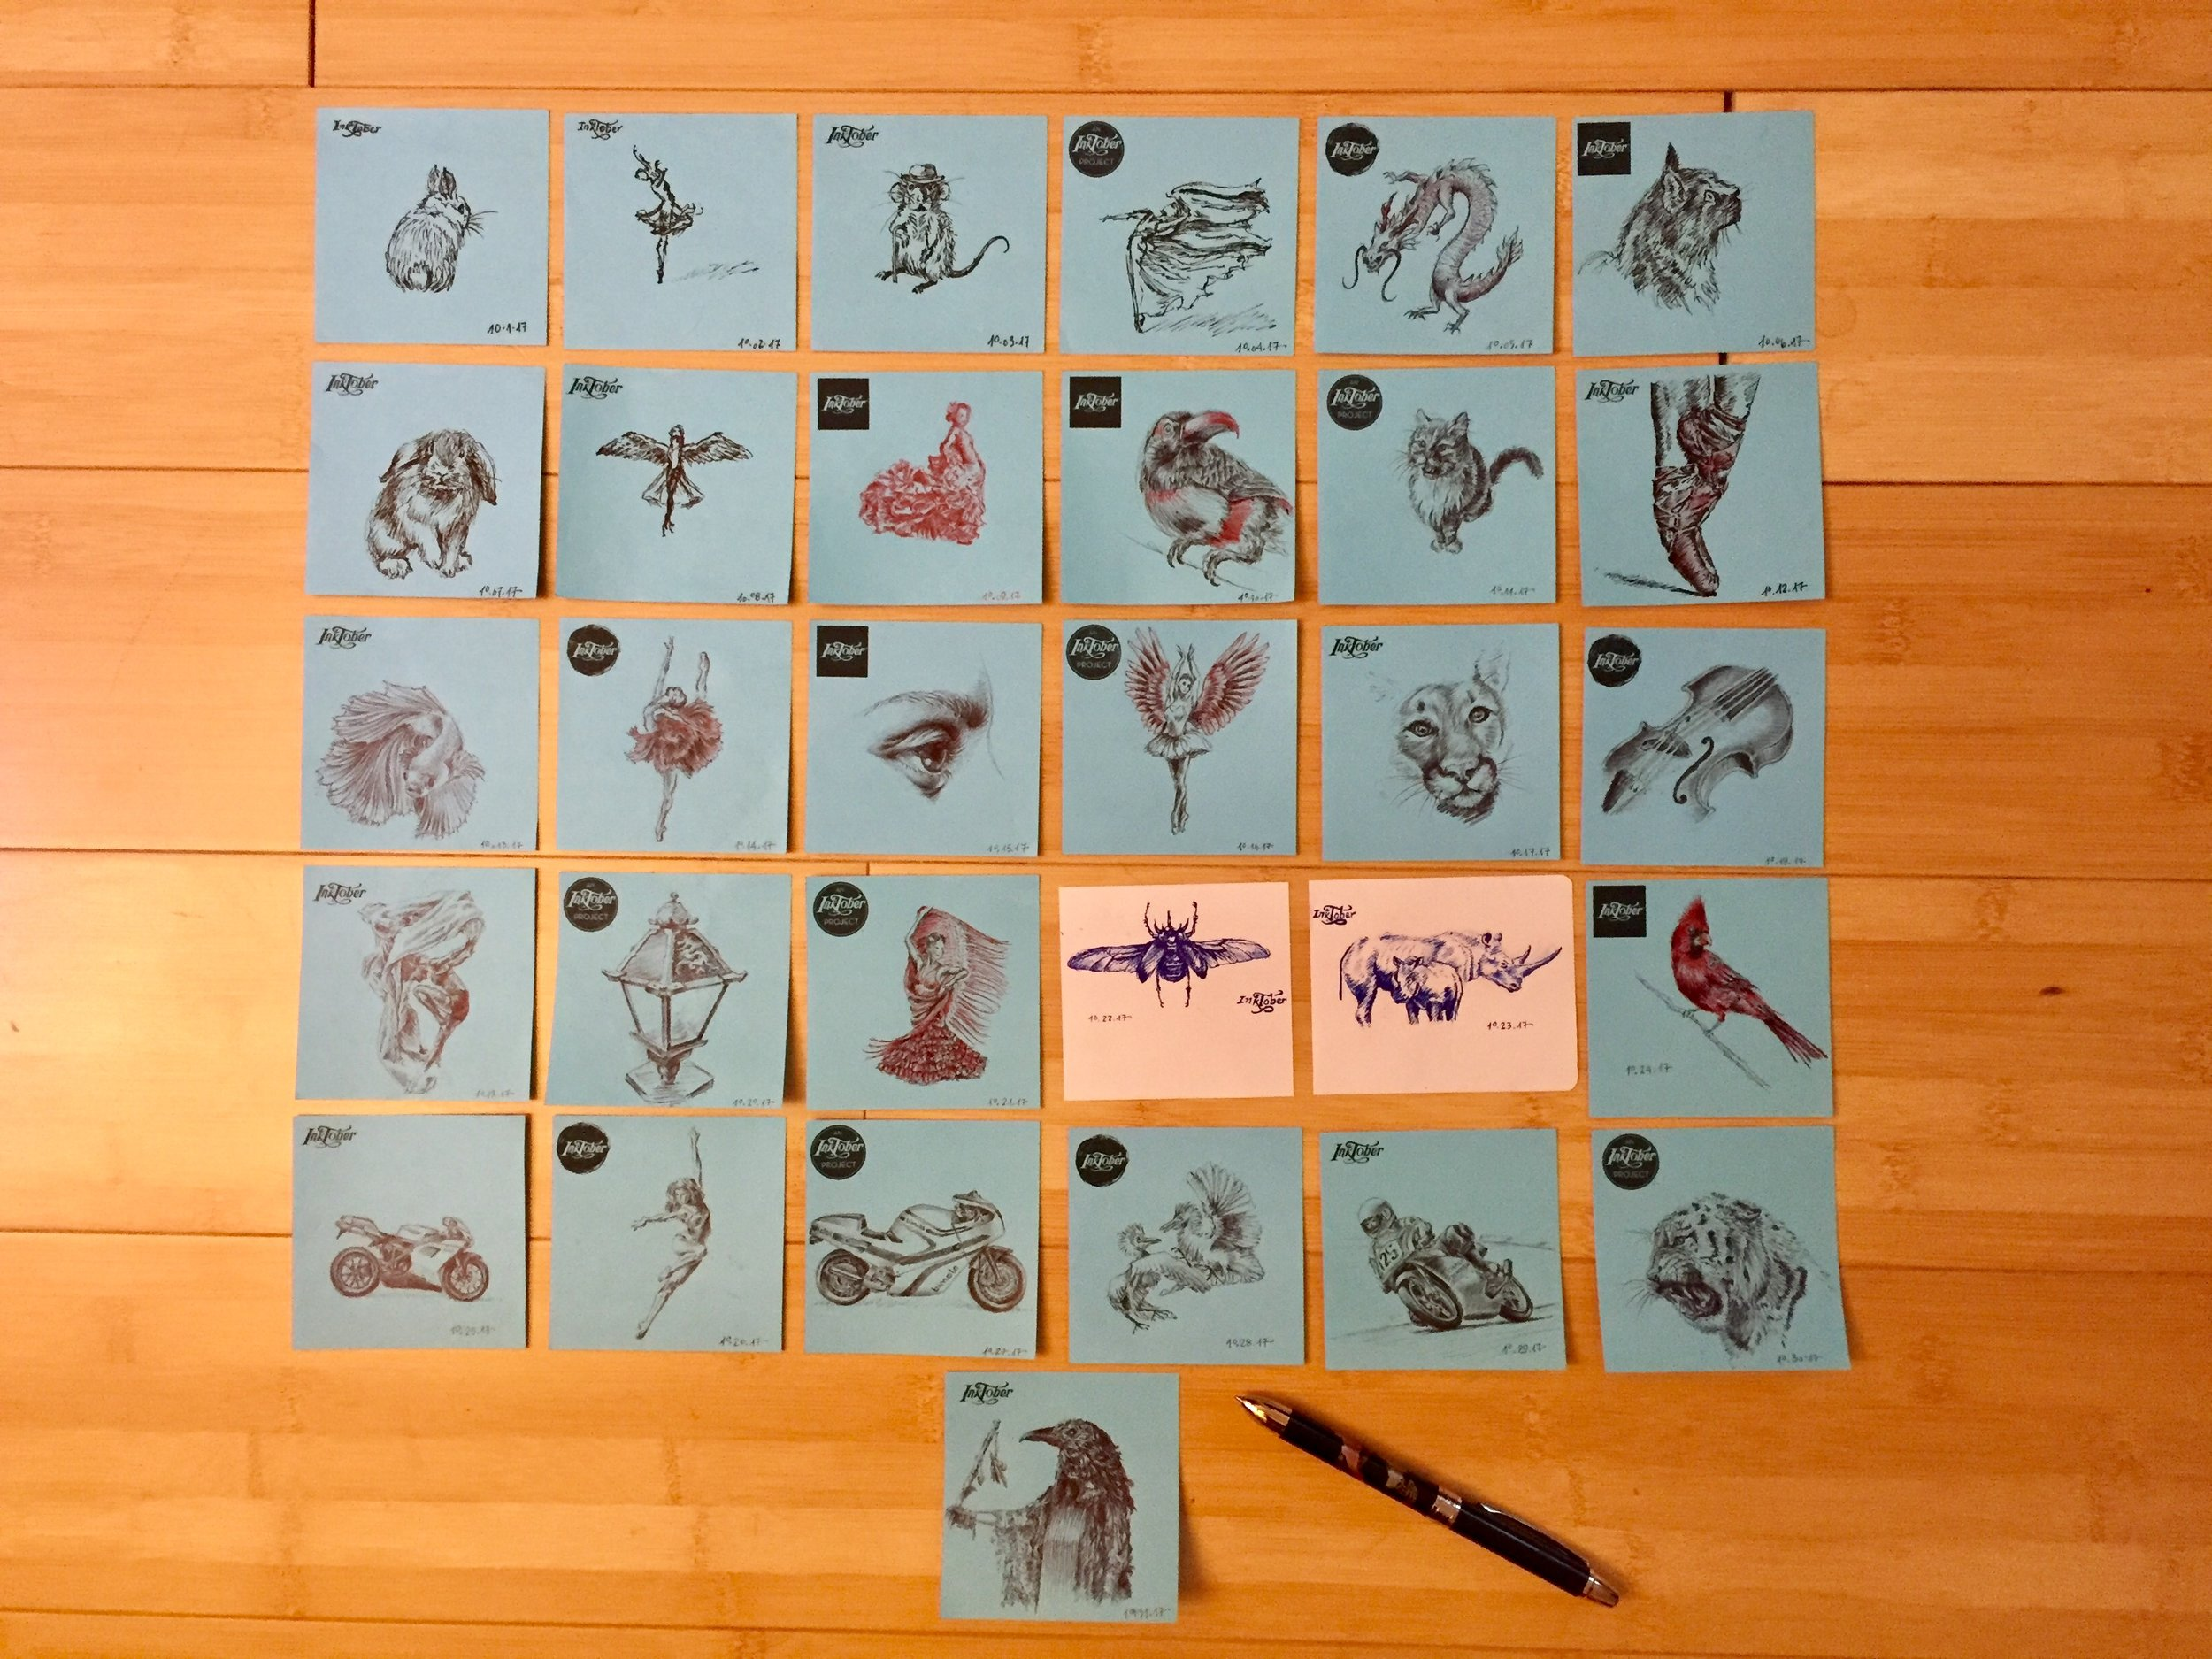 All the drawings together with a pen for scale